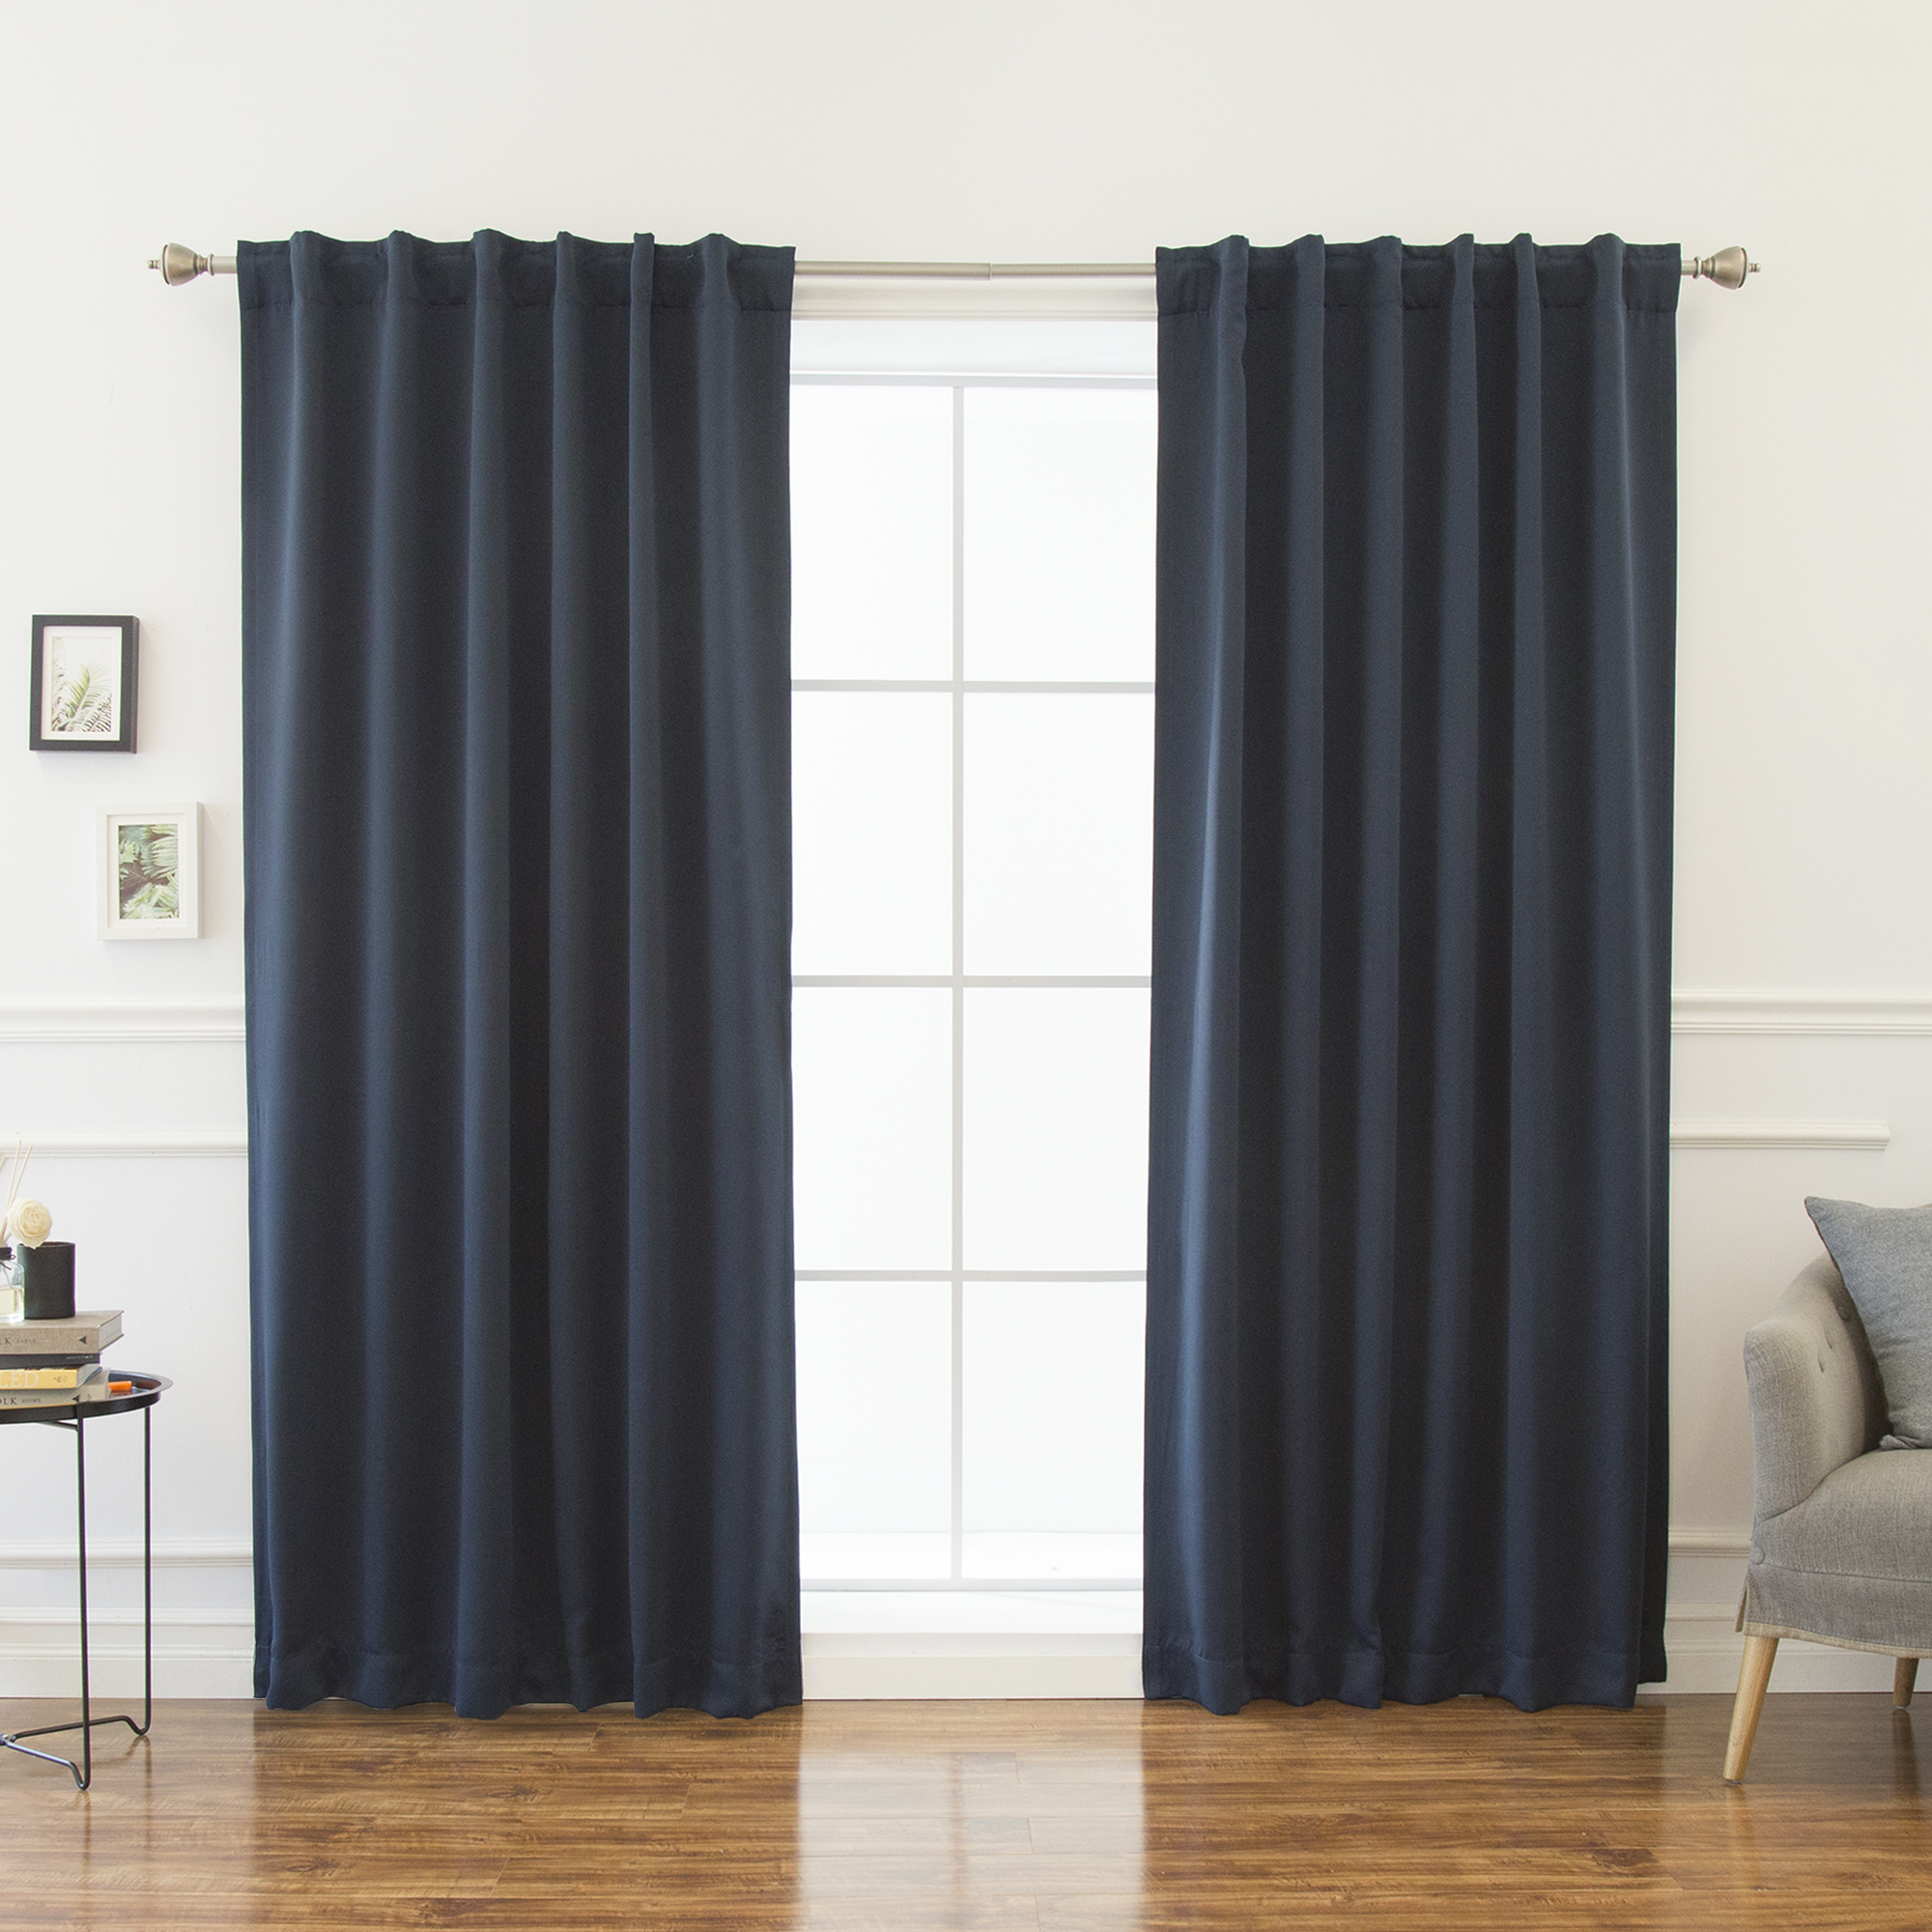 Best Home Fashion Thermal Insulated Backtab Blackout Curtain (Set of 2) 52-in W 72-in L